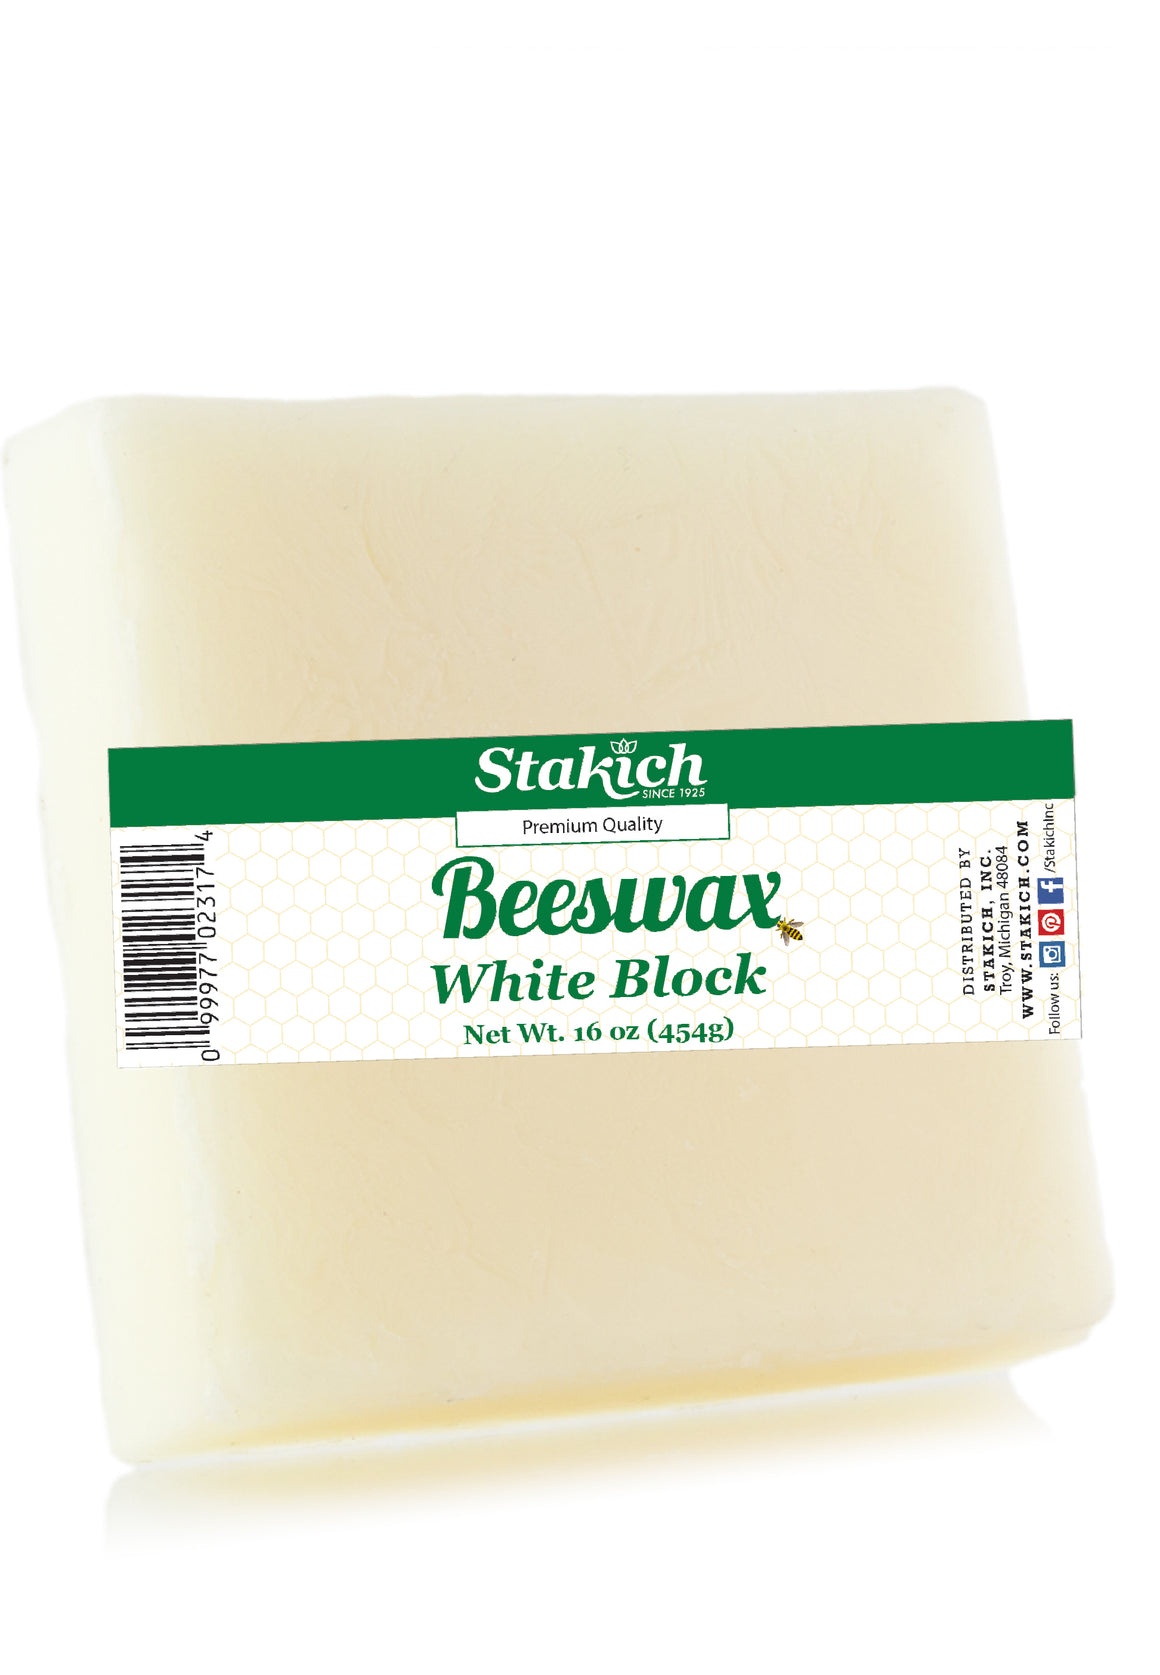 White Beeswax Blocks (40 lb)